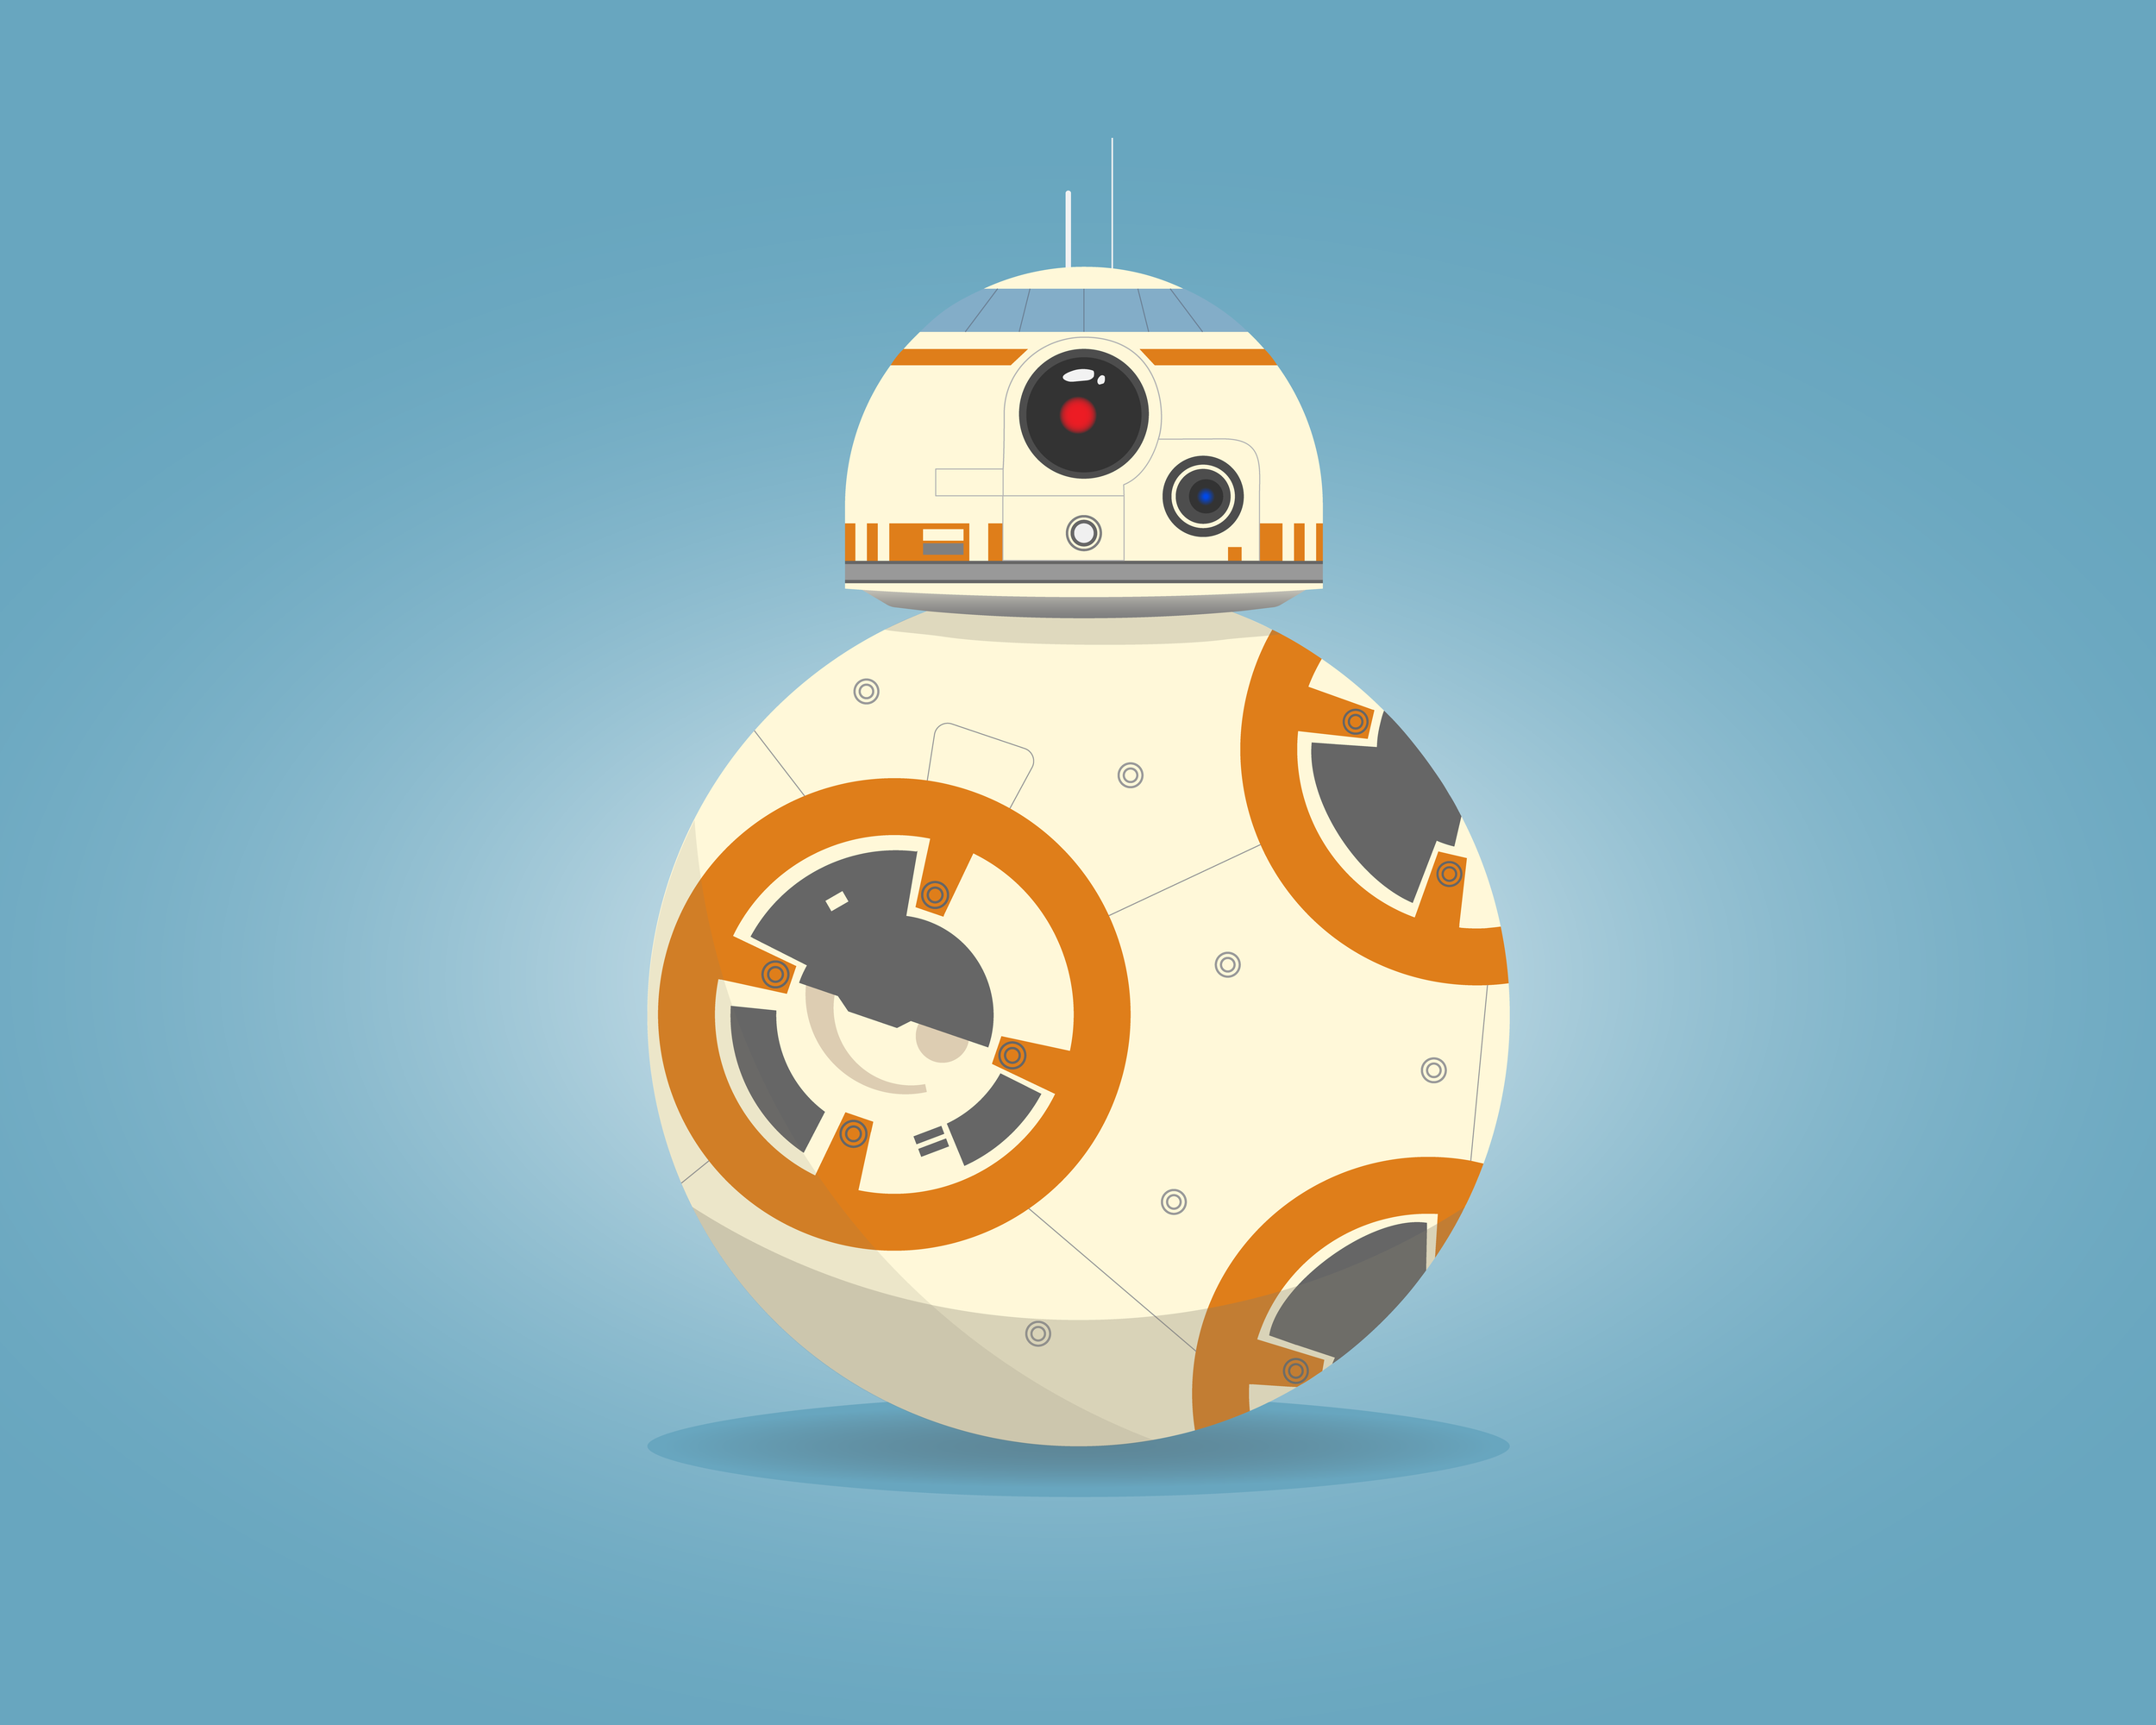 bb8-updated-02.png